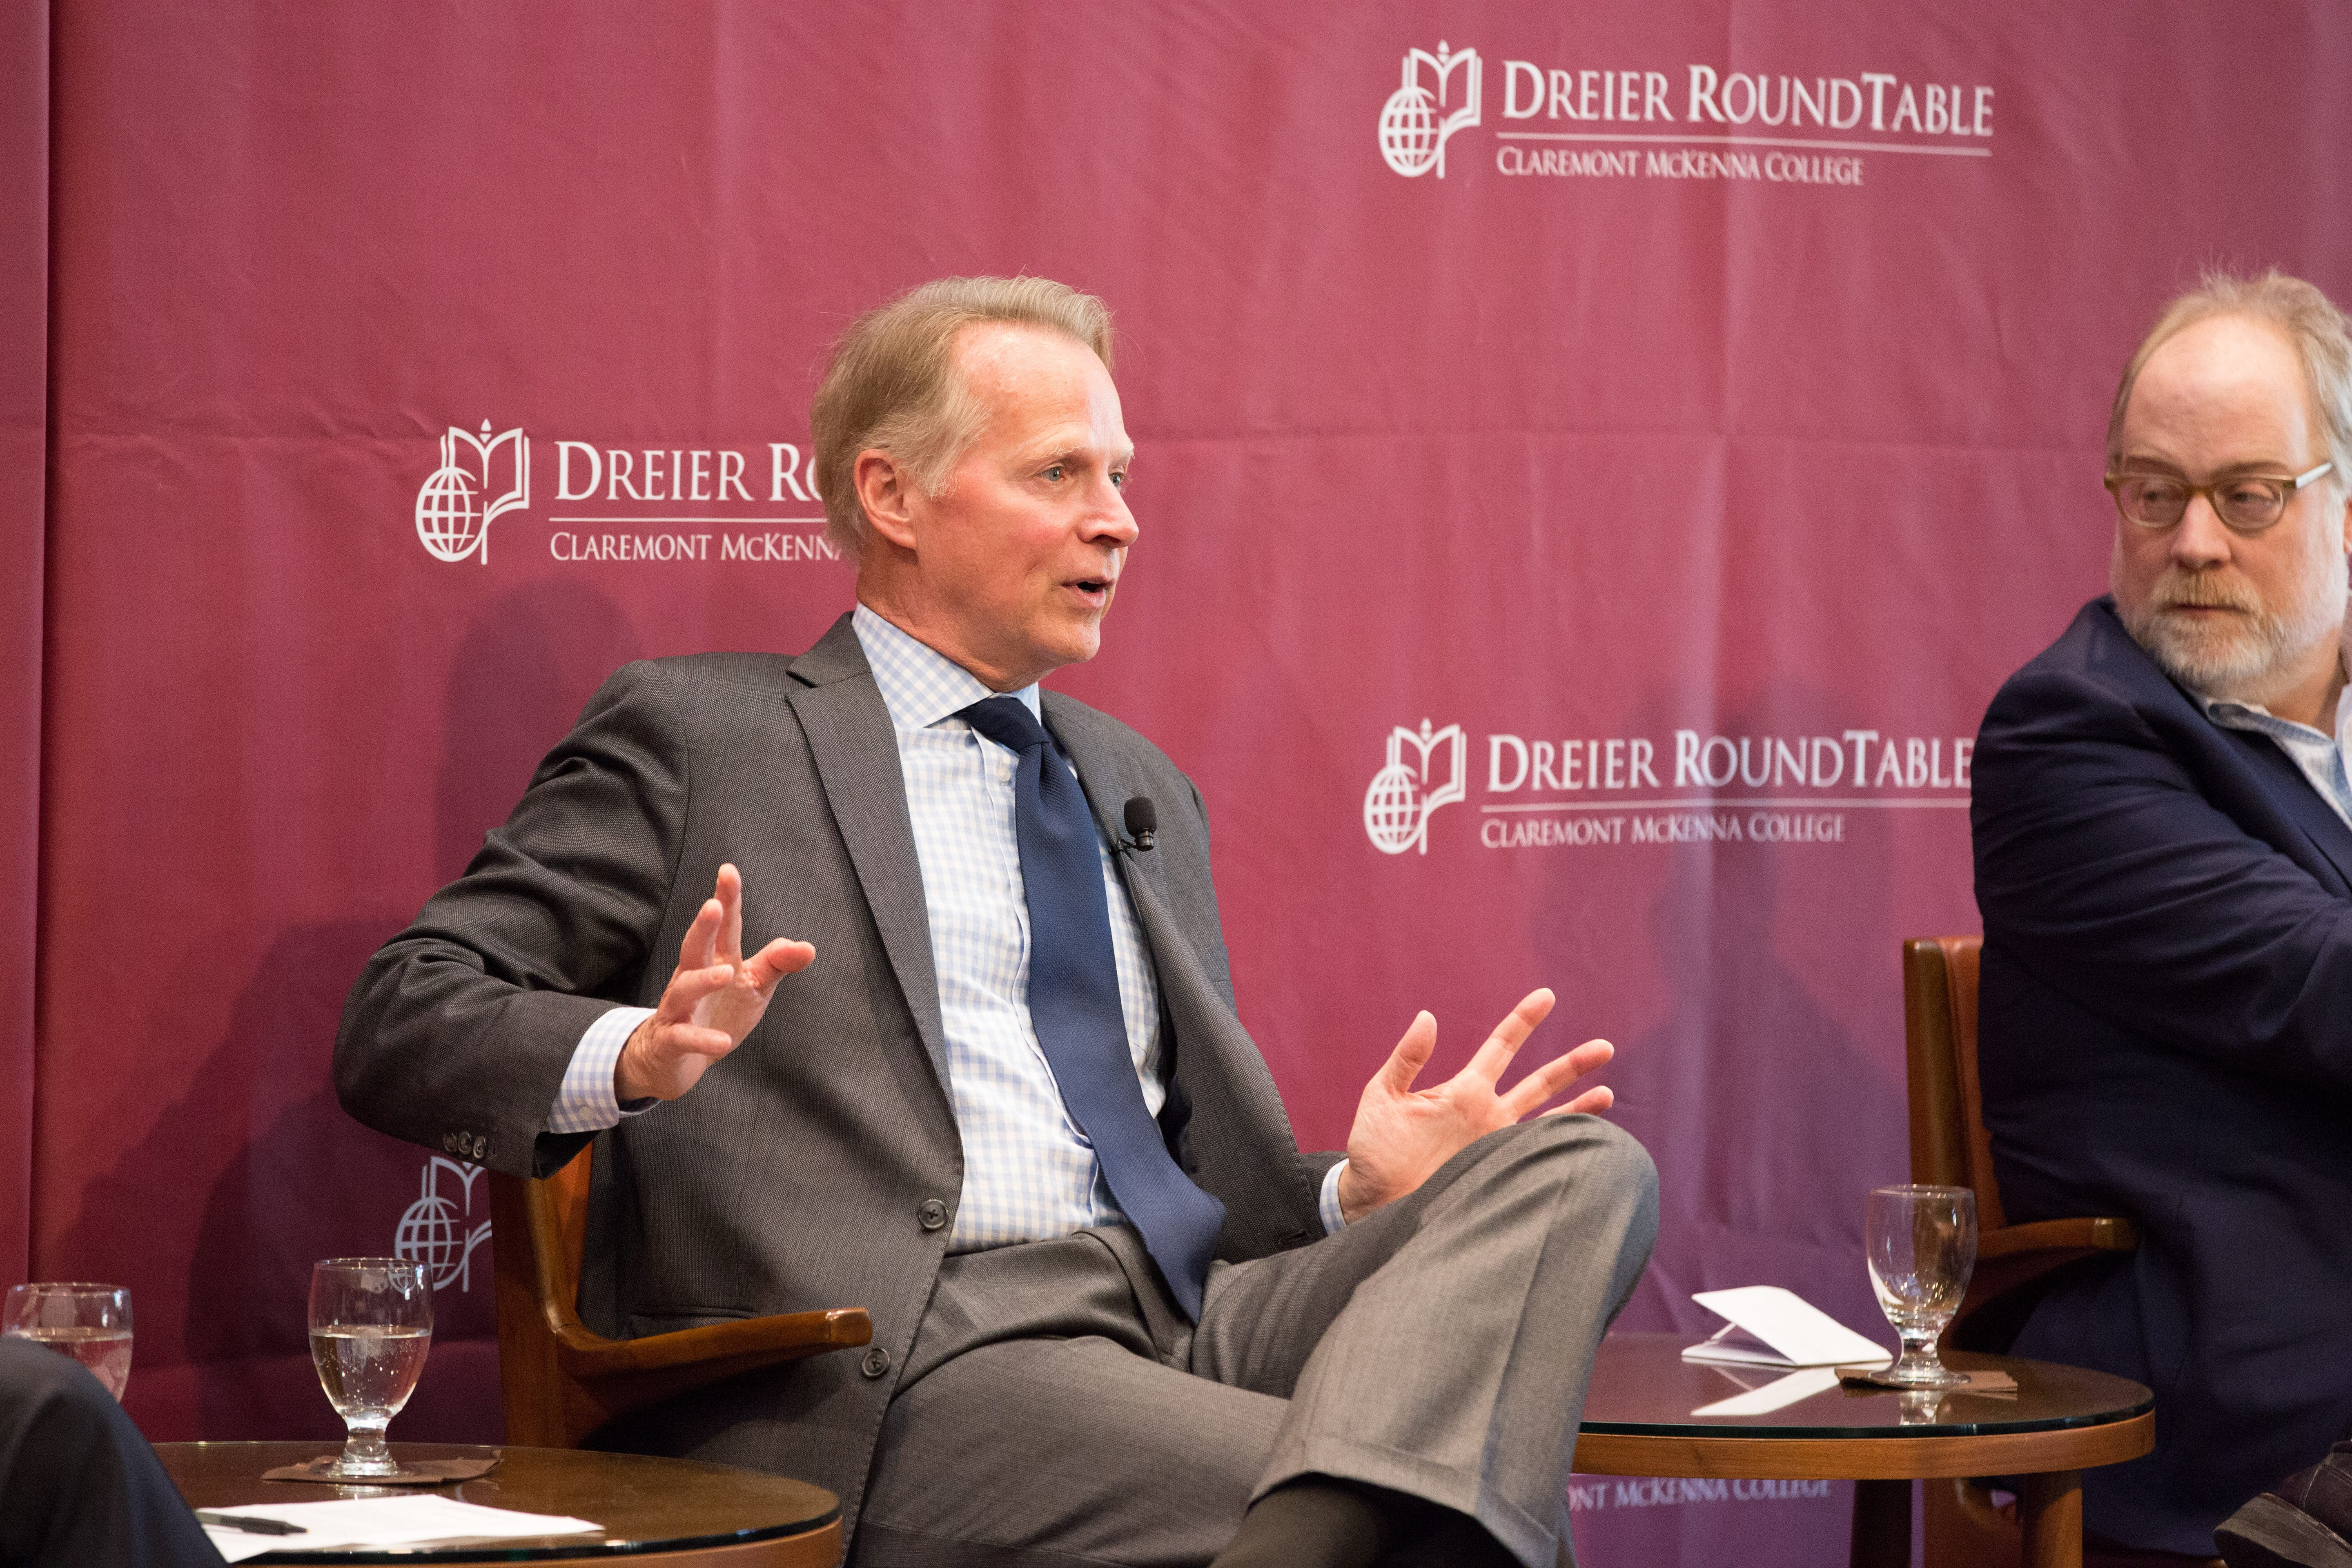 David Dreier addressing the question of immigration reform.